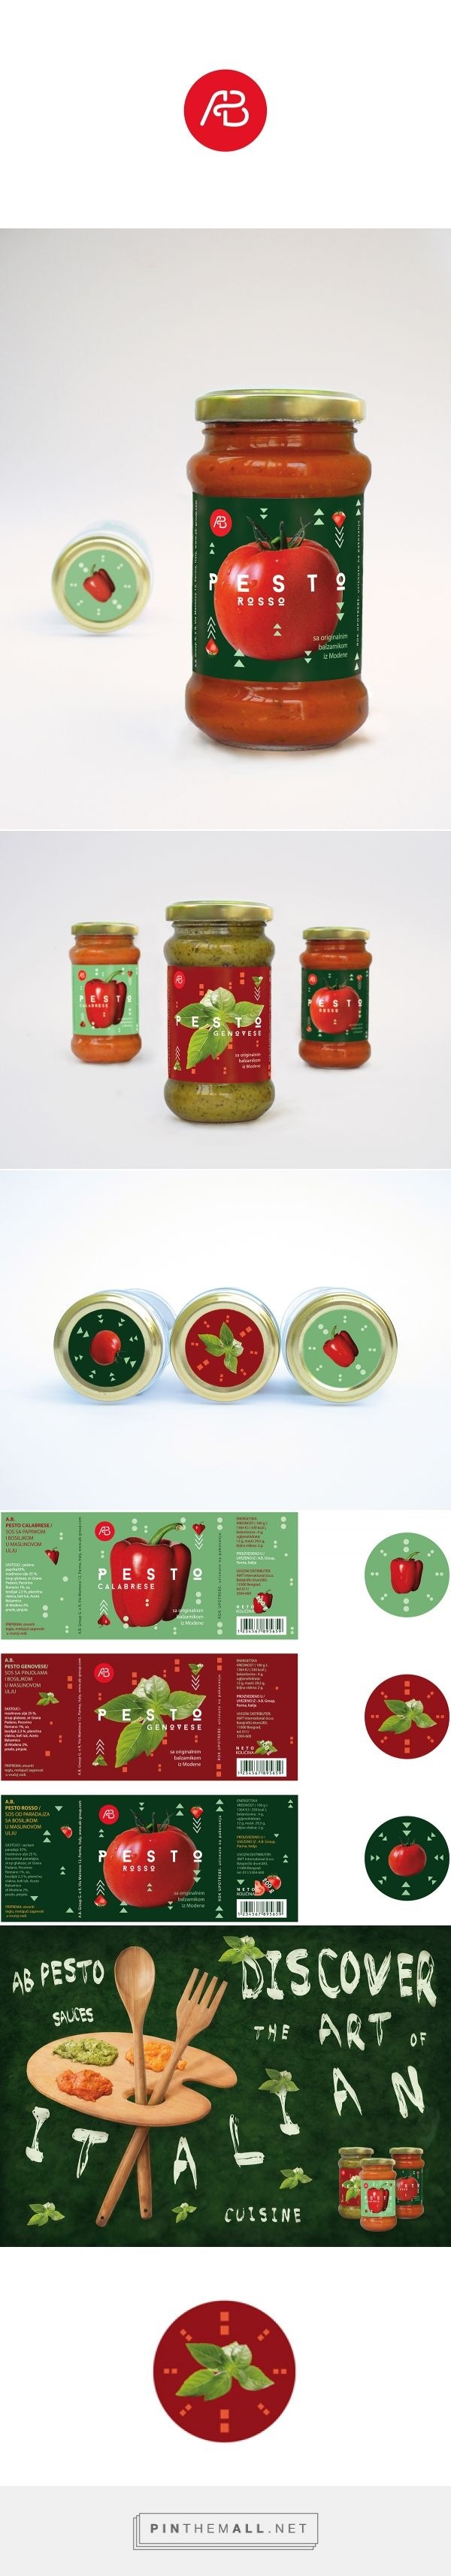 Graphic design, packaging and print design for A.B.Pesto Sauces on Behance by…